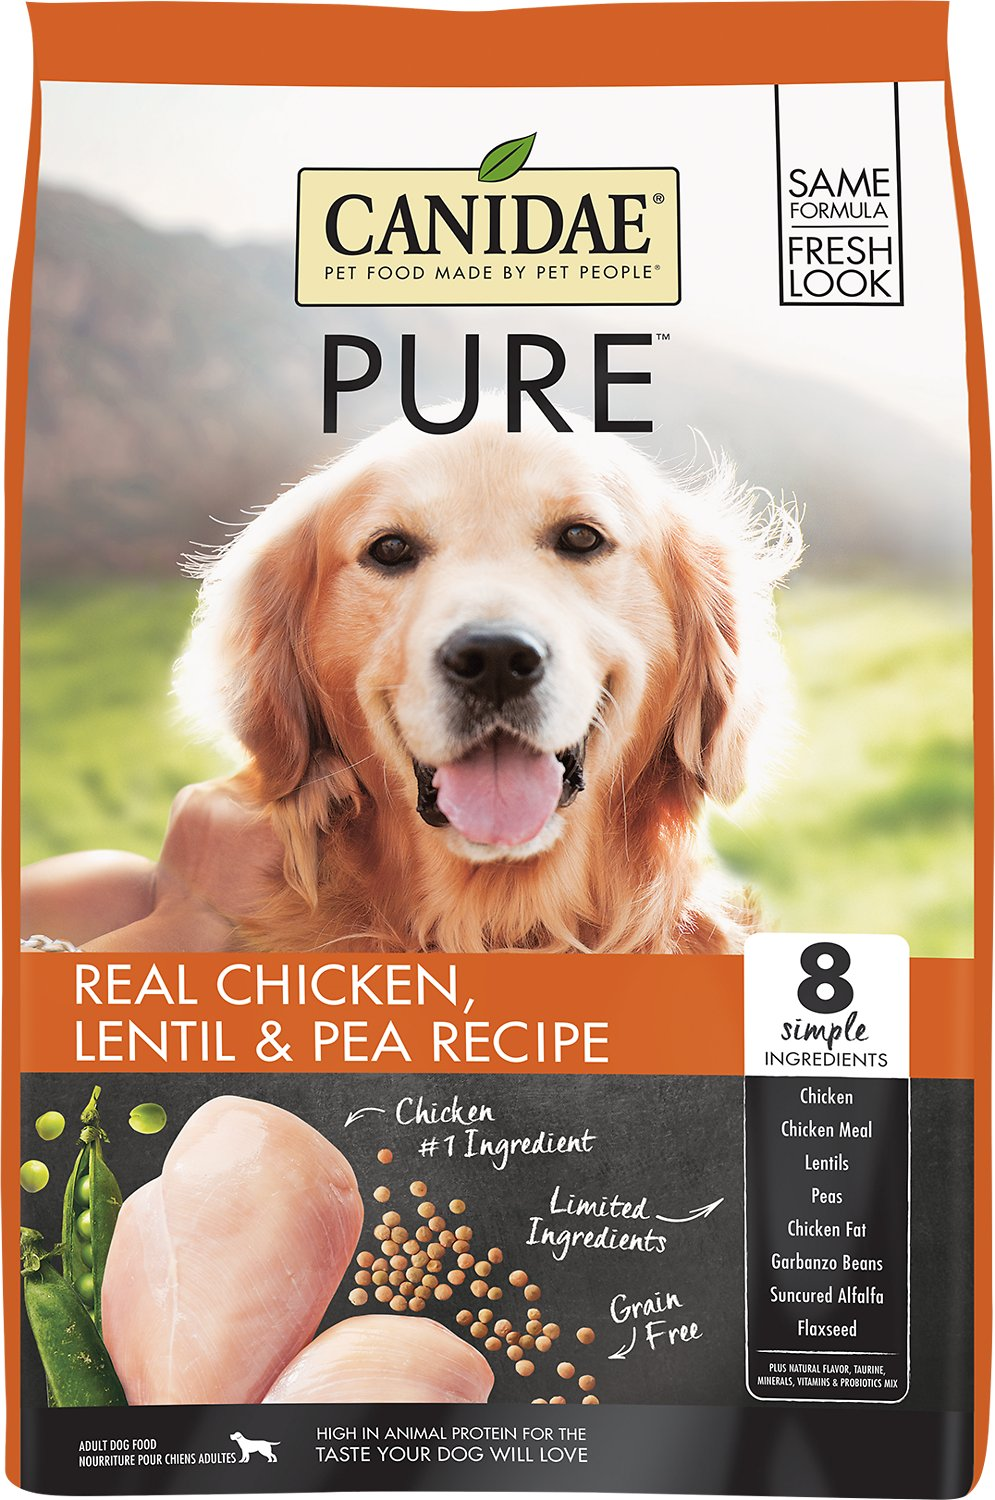 Canidae Grain-Free PURE Real Chicken, Lentil & Pea Recipe Dry Dog Food, 4-lb